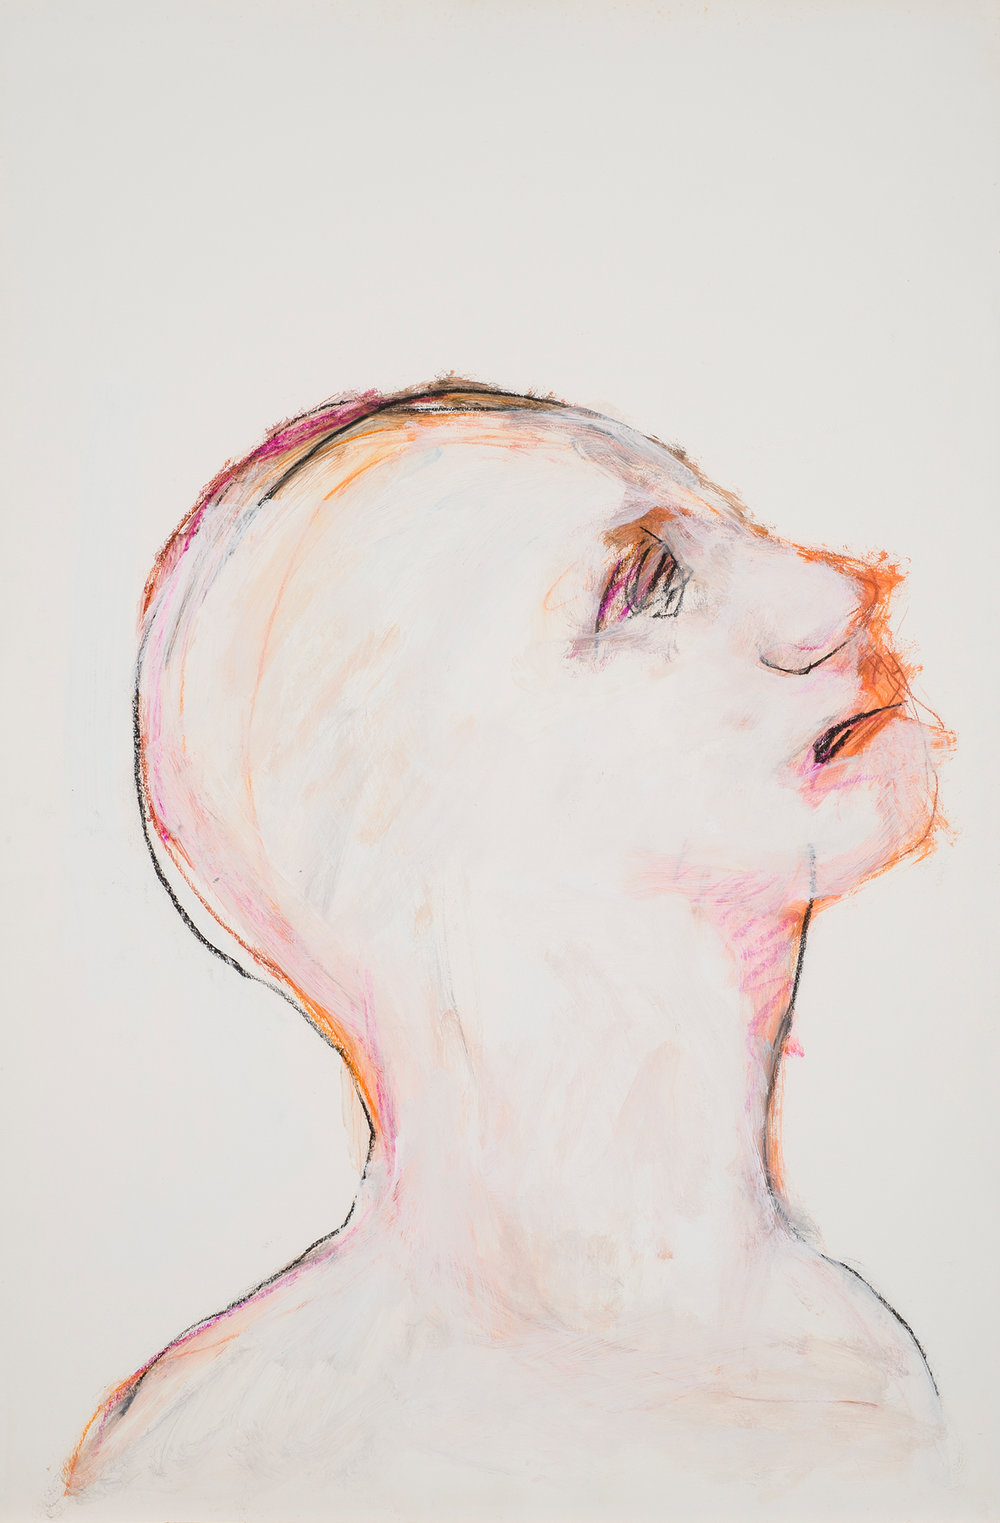 Untitled,  c. 1990 Acrylic, charcoal on paper 38 x 25 in. (96.5 x 63.5cm.)